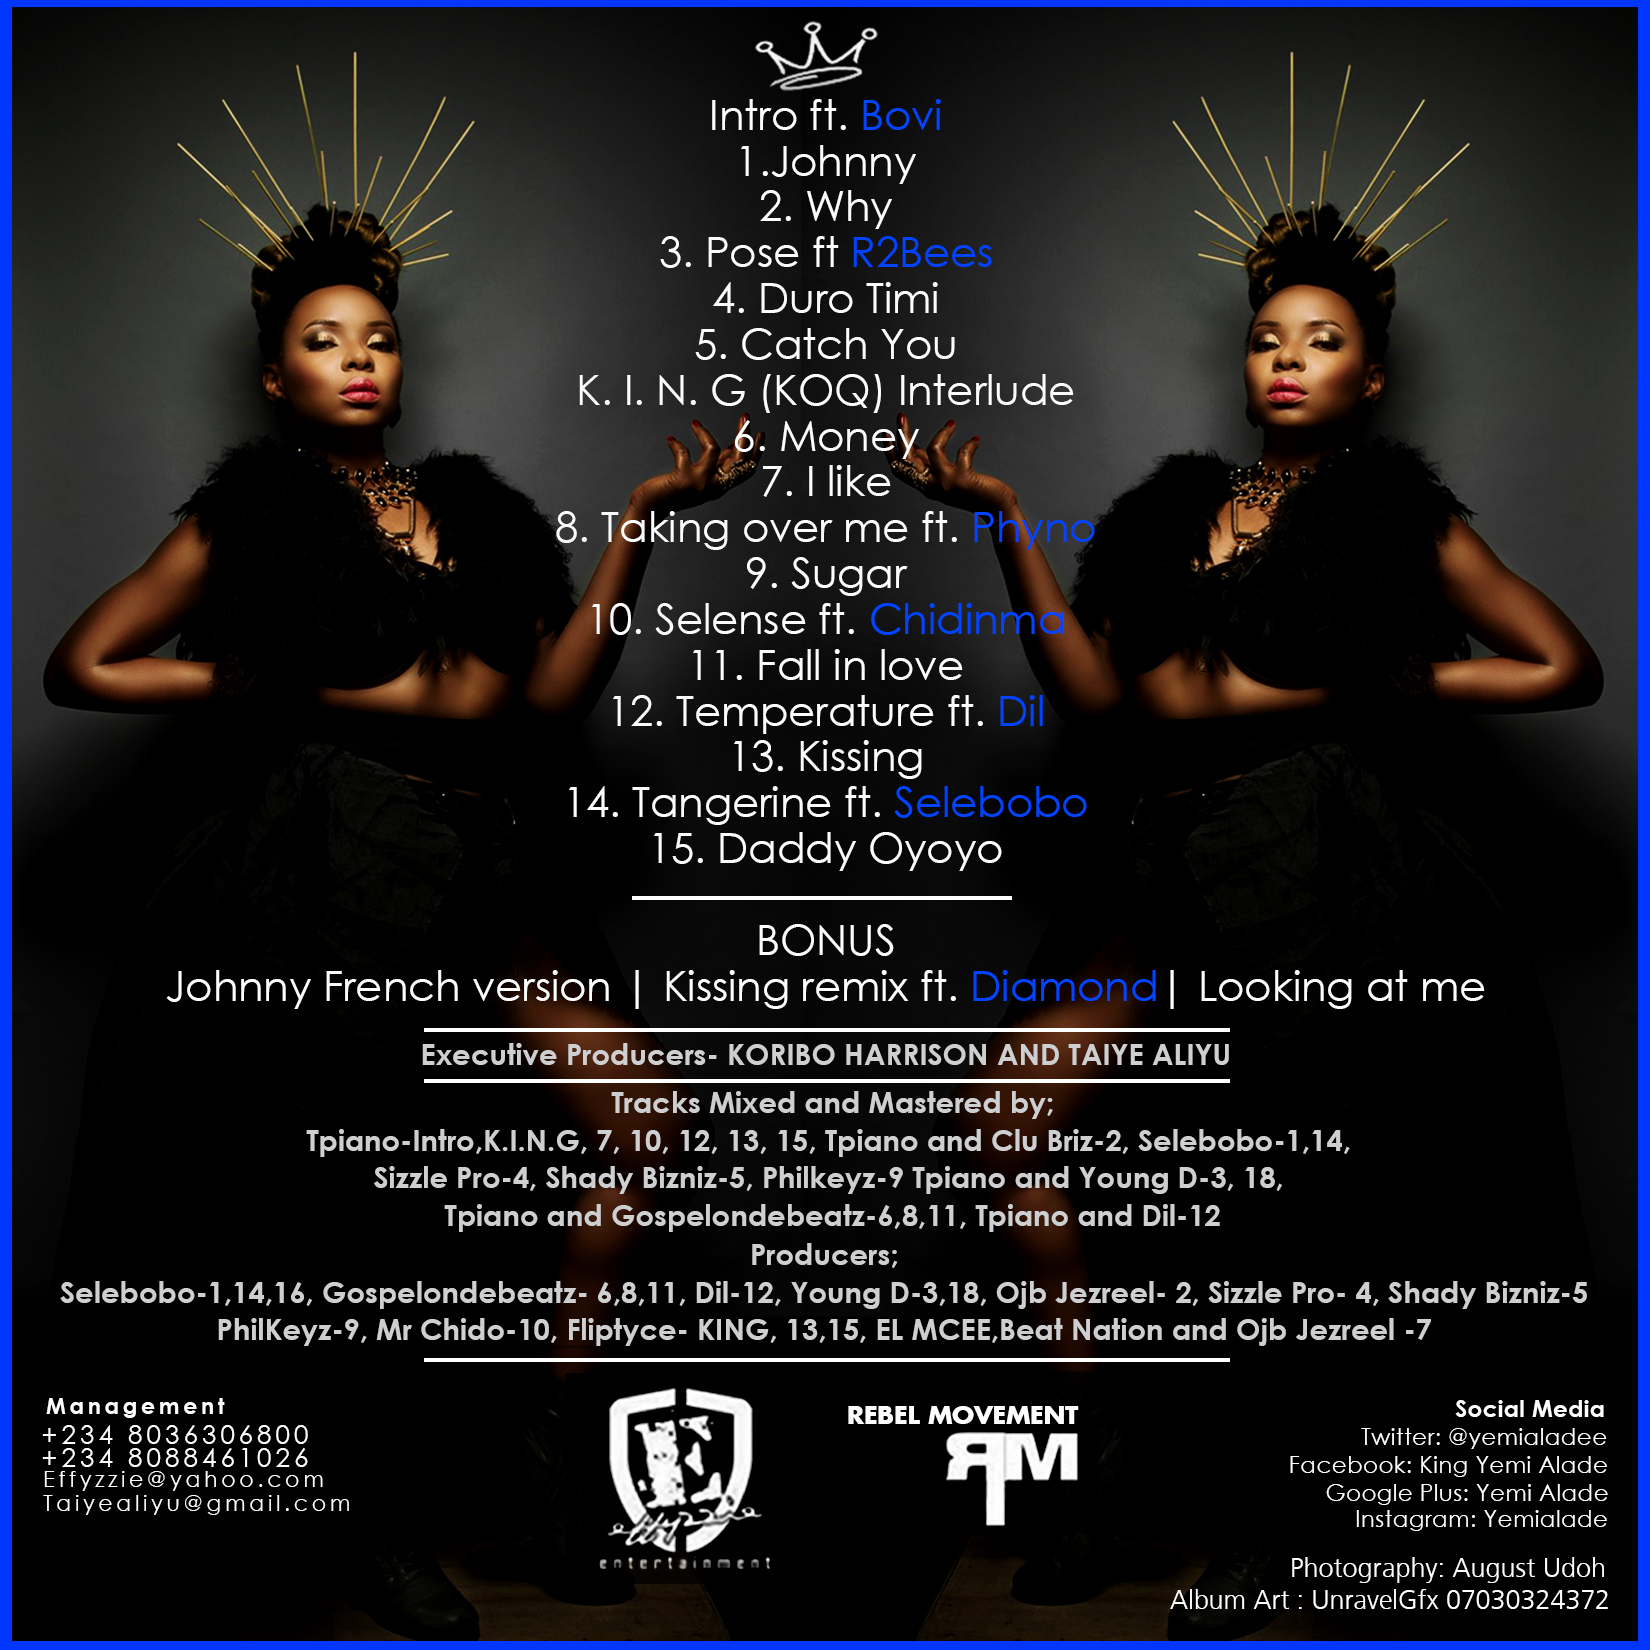 Yemi Alade - King Of Queens [Album Art Back]